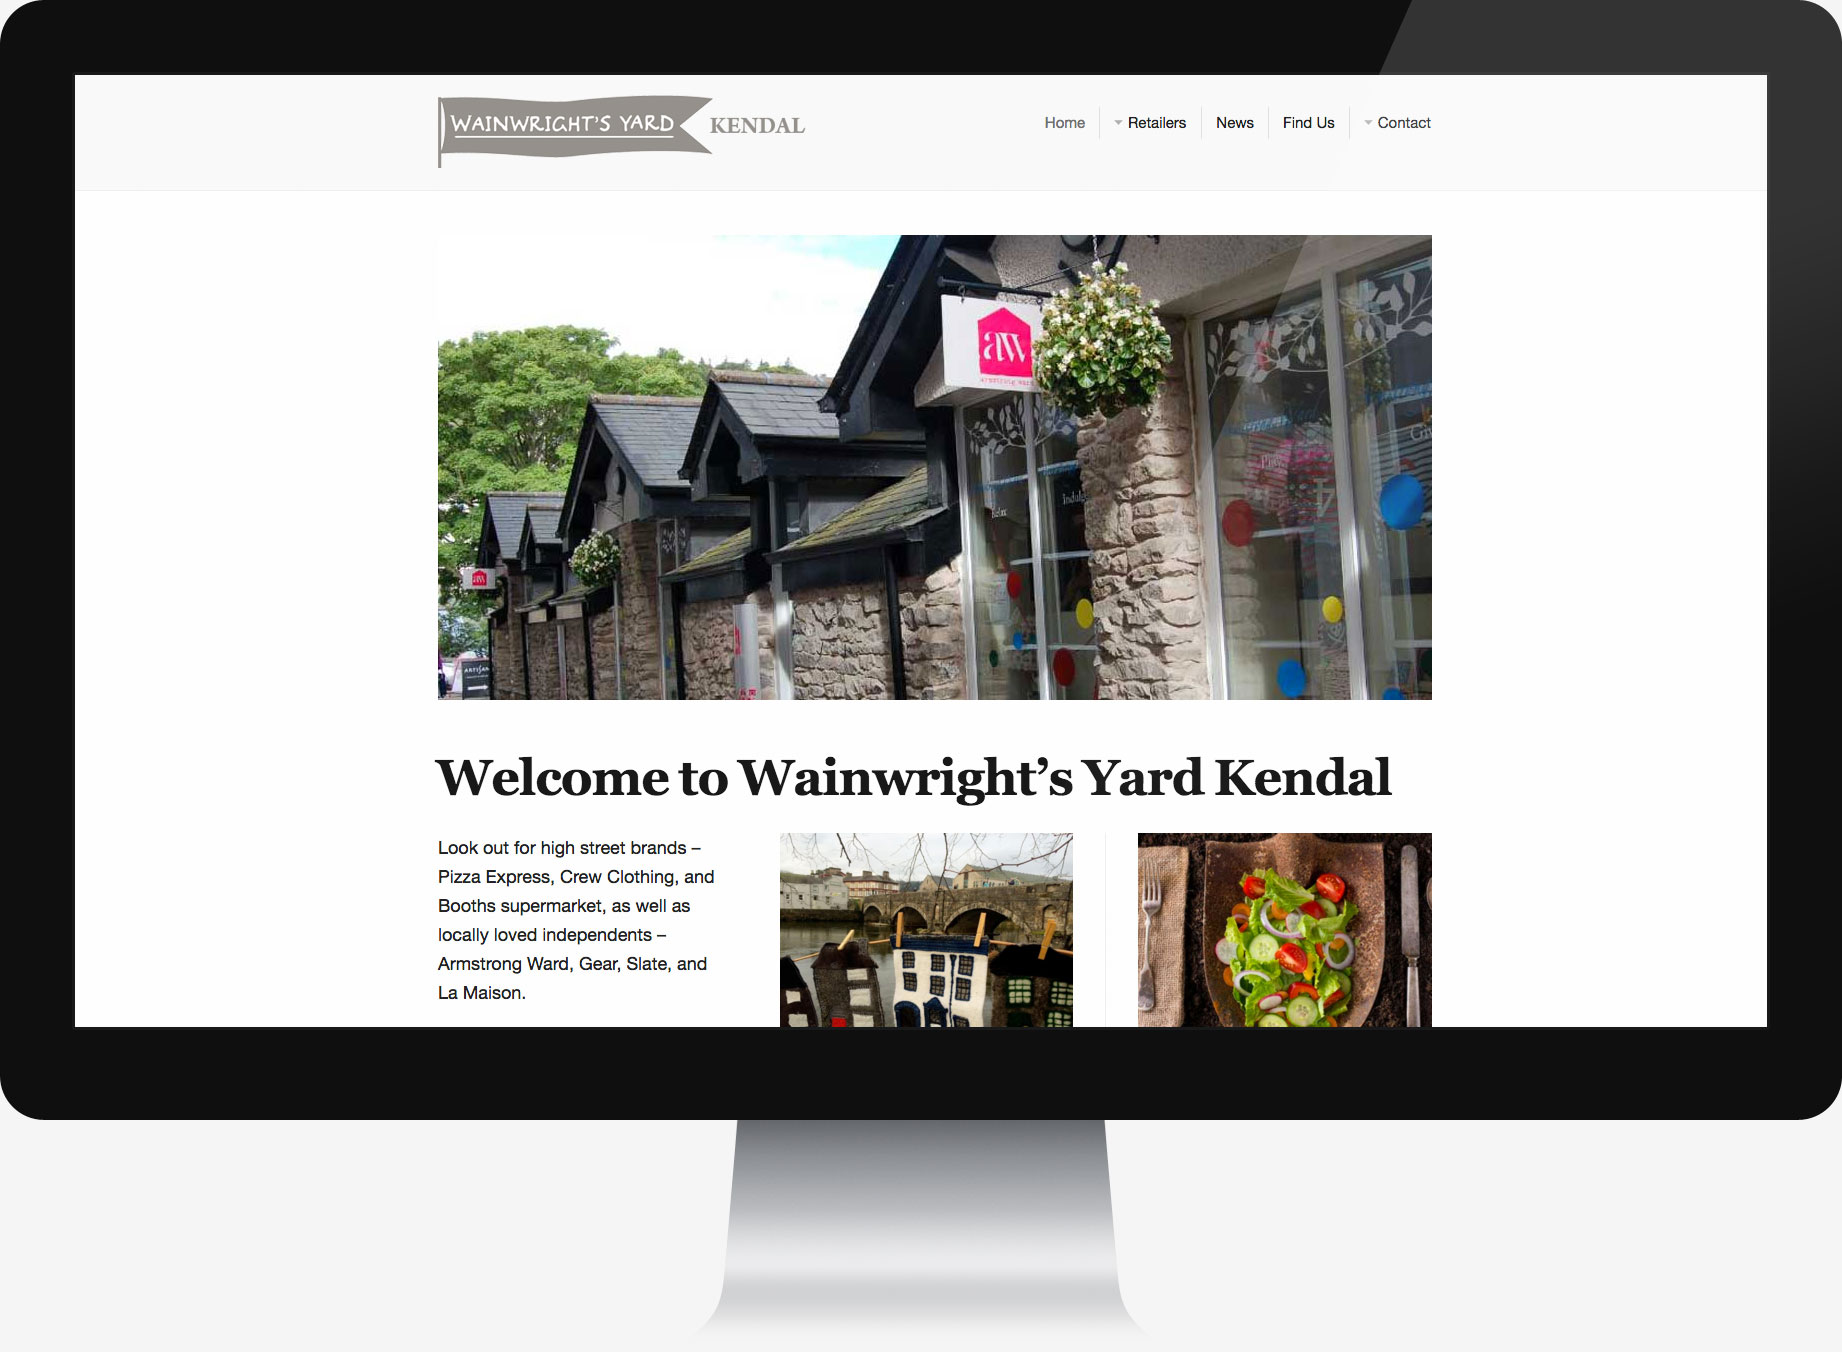 Retail shops website design